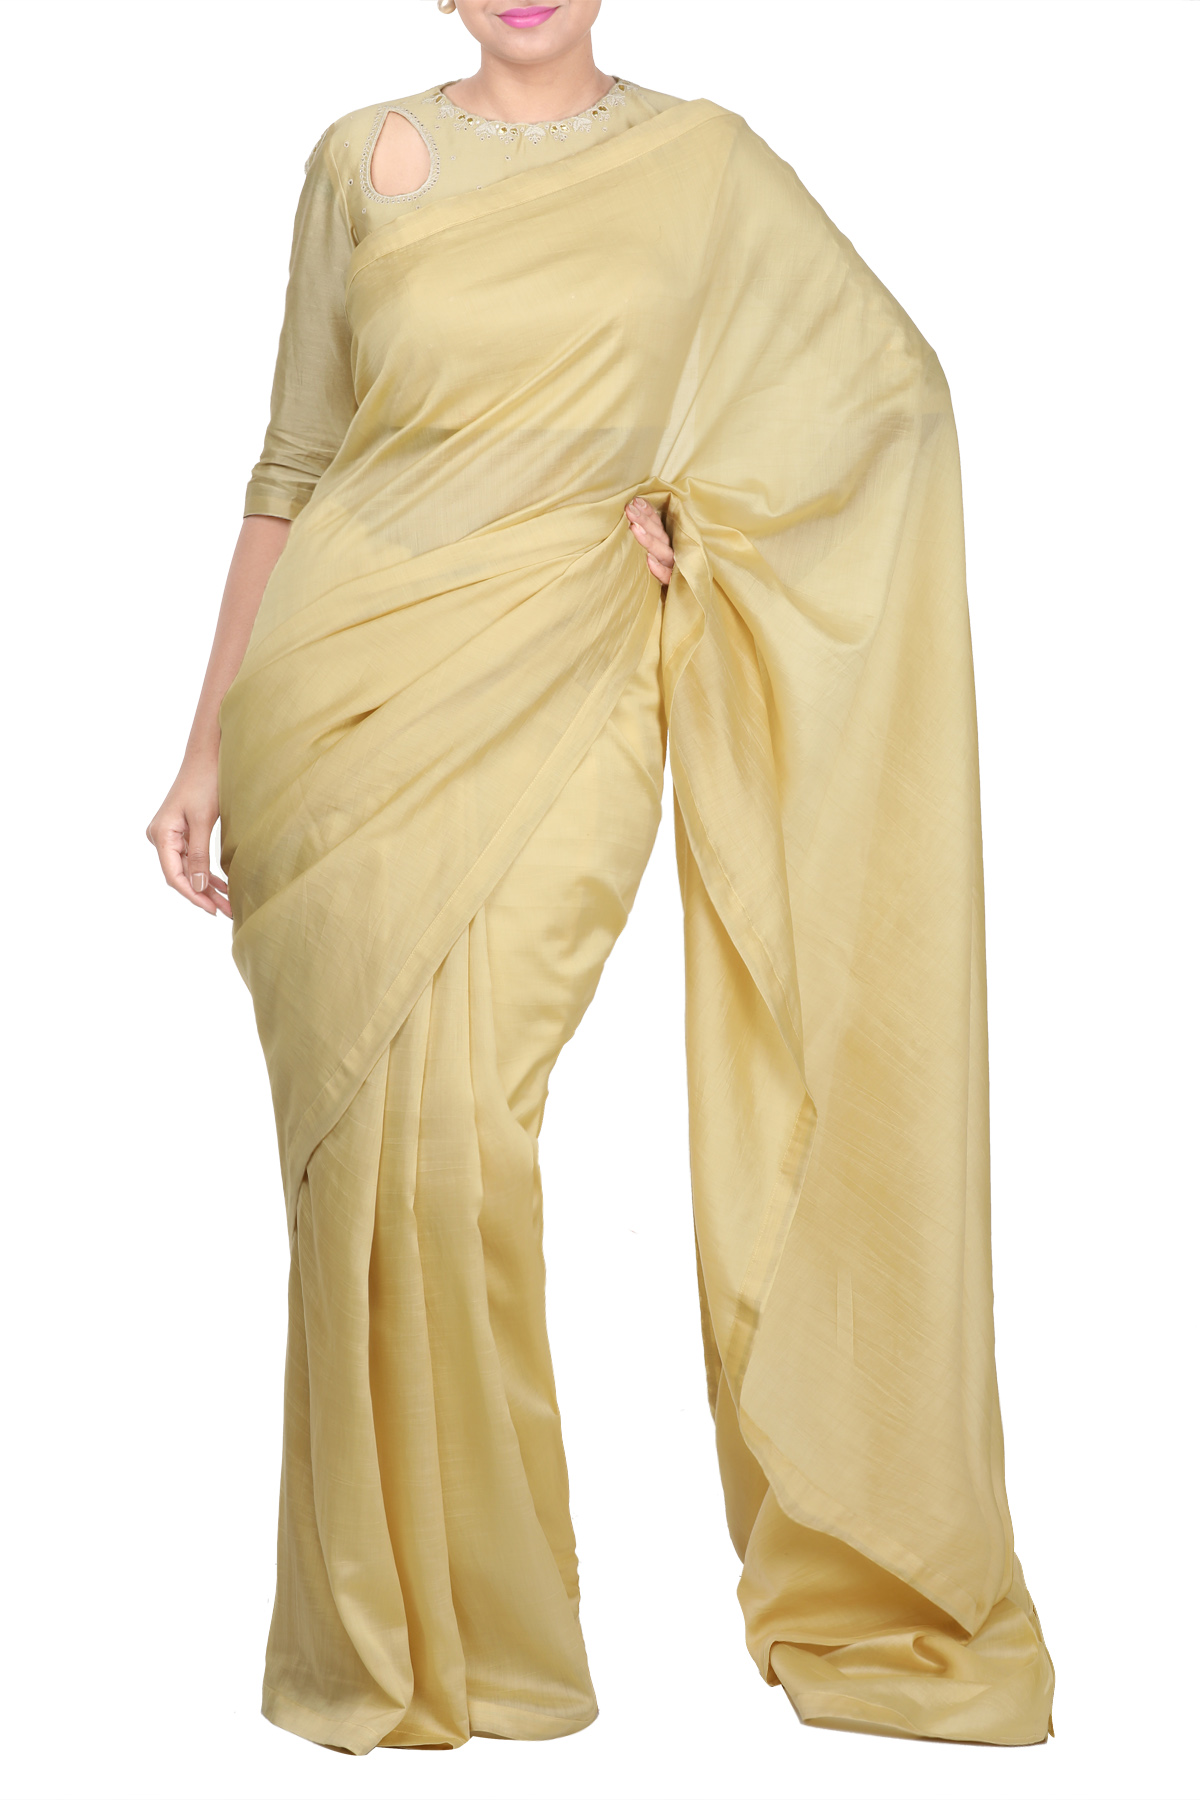 Beige Chanderi Gota Embroidery Blouse With Saree